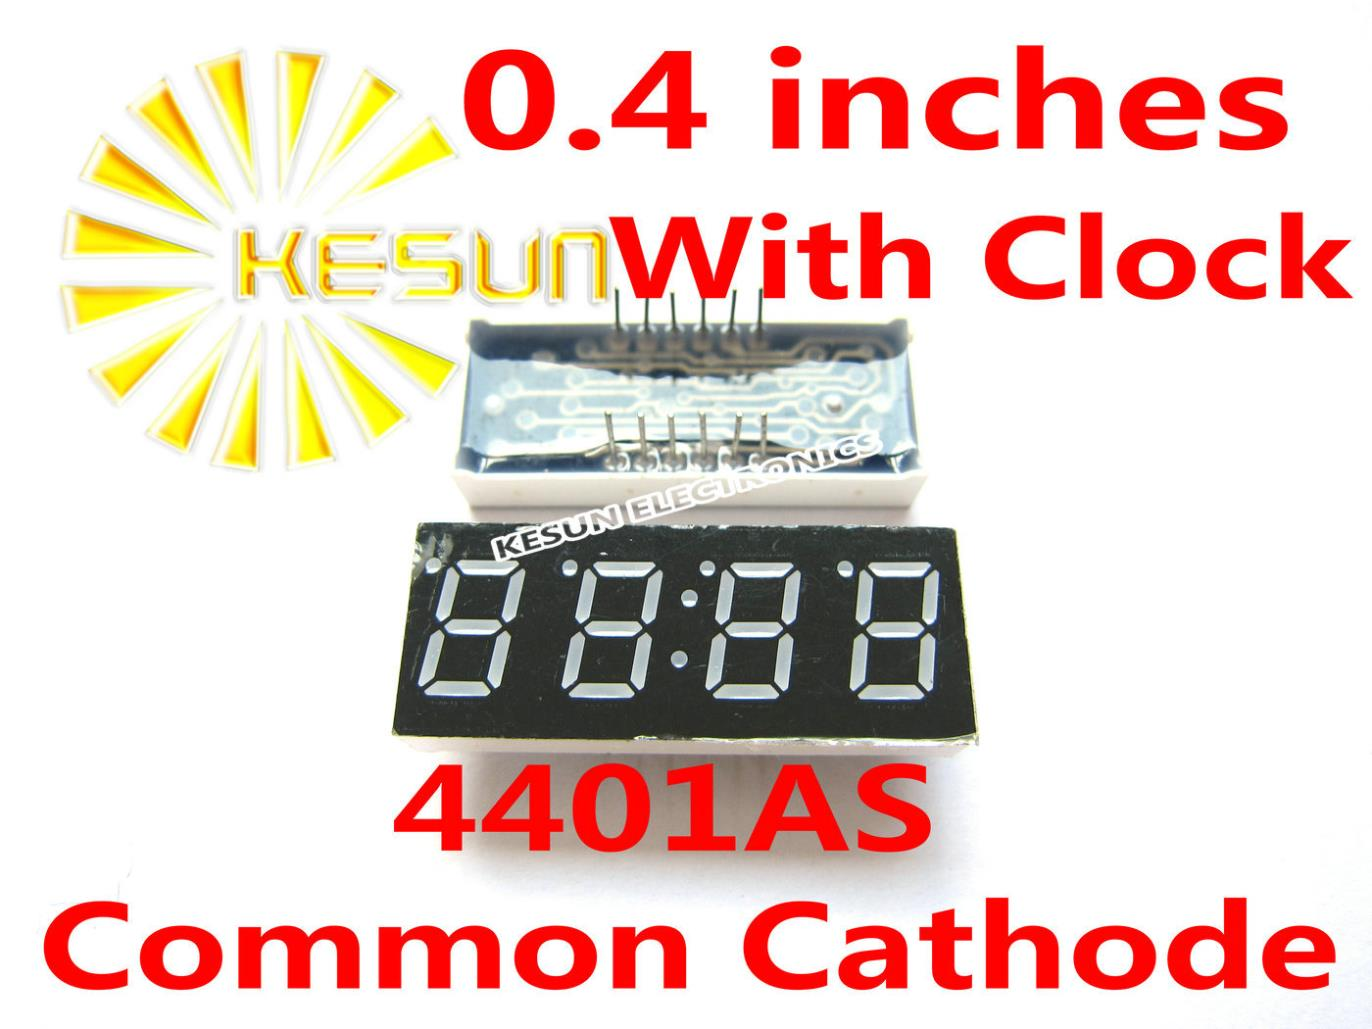 5PCS X 0.4 Inches Red Common Cathode/Anode 4 Digital Tube With Clock LED Display Module 4401AS 4401BS